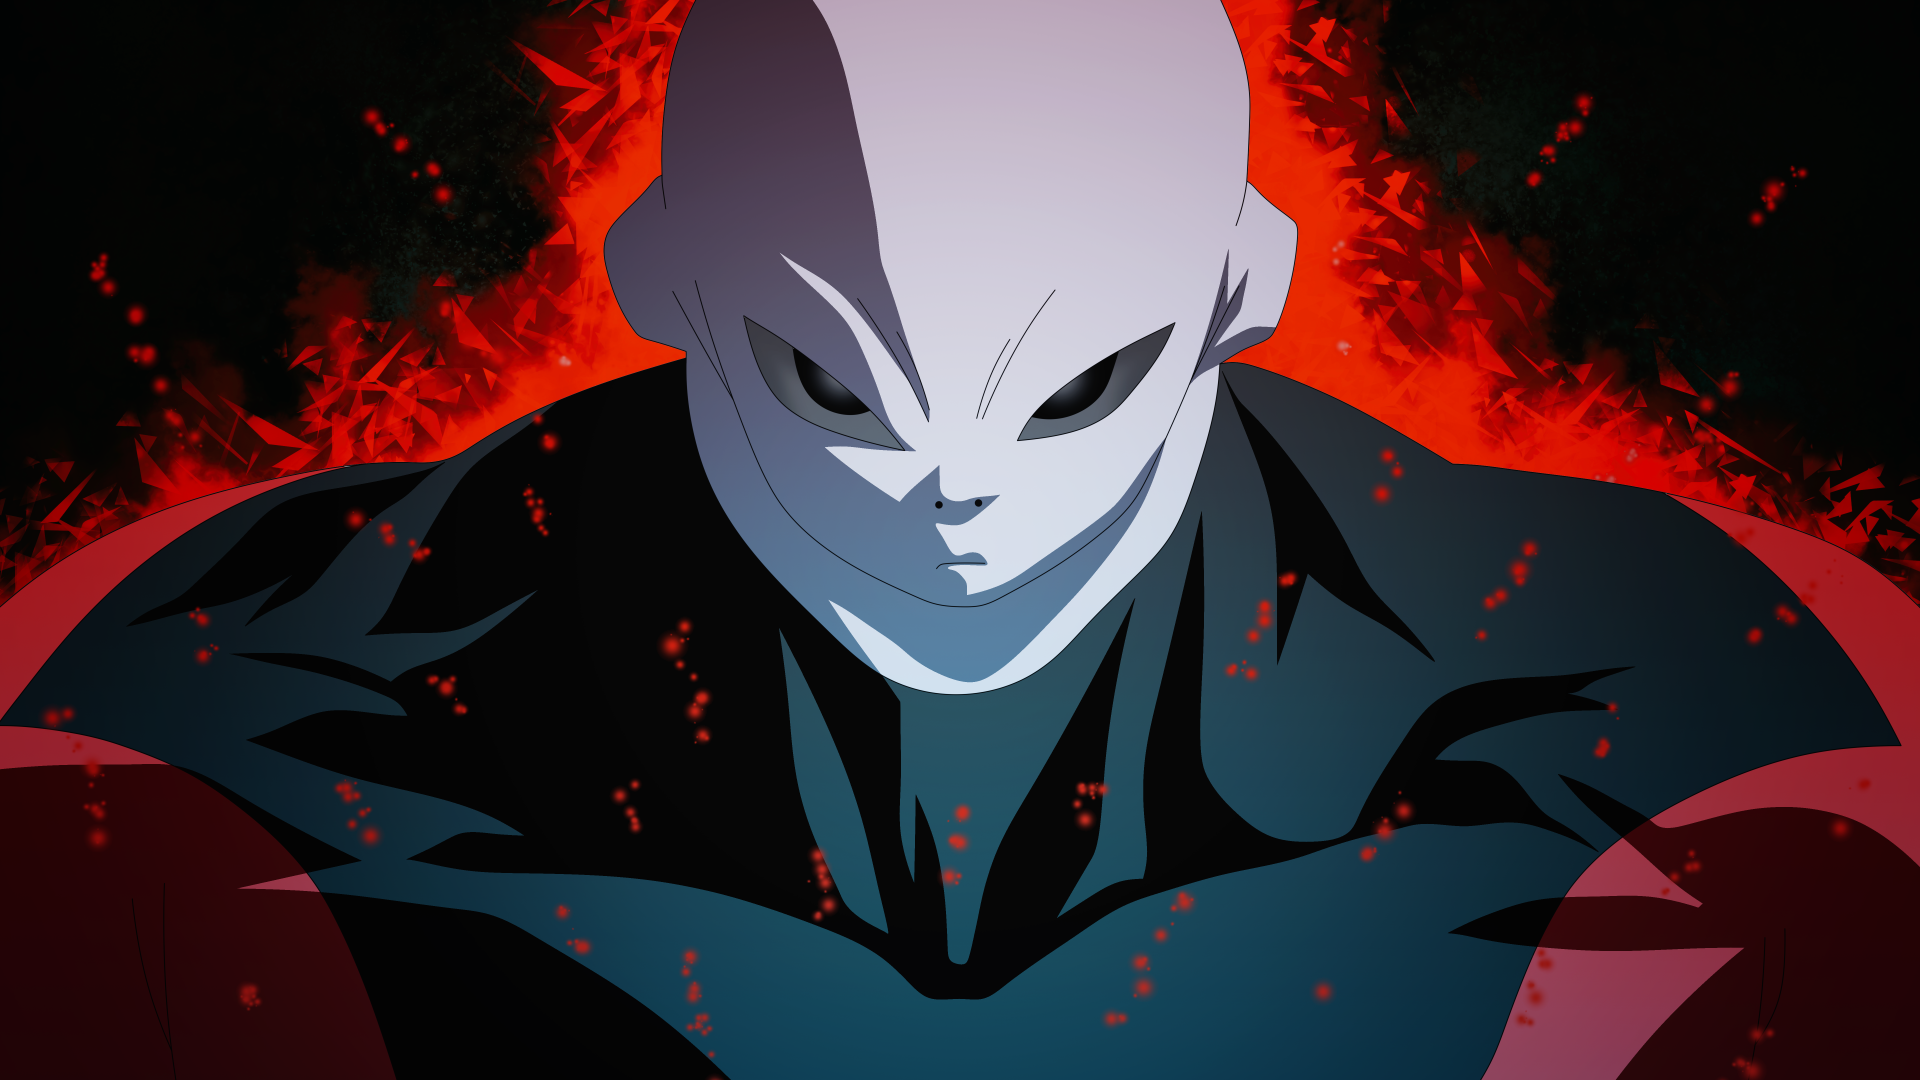 Jiren 8k Ultra HD Wallpaper | Background Image | 7680x4320 ...